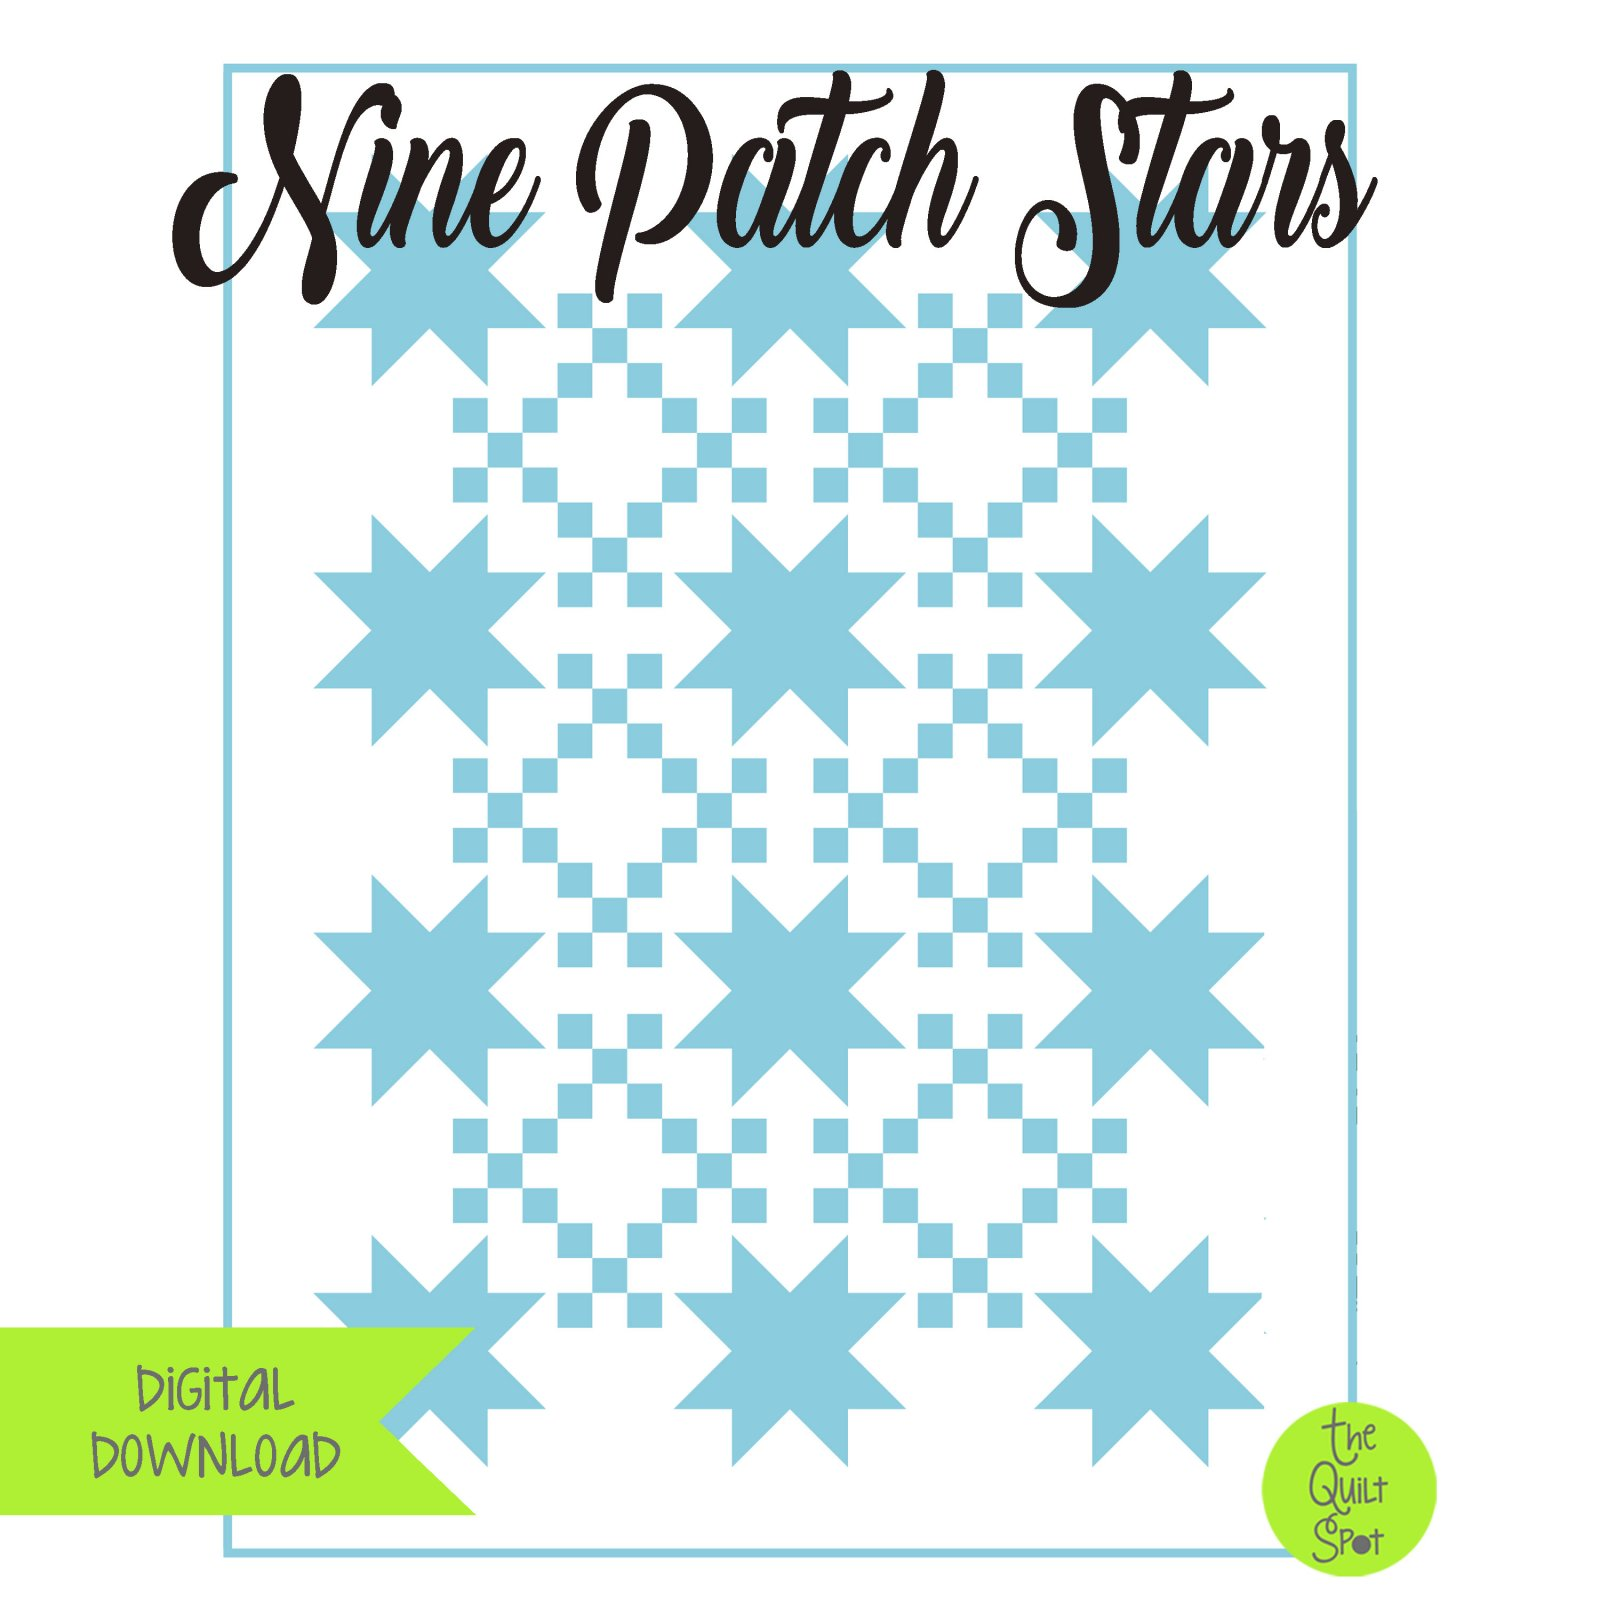 Nine Patch Stars Digital Download